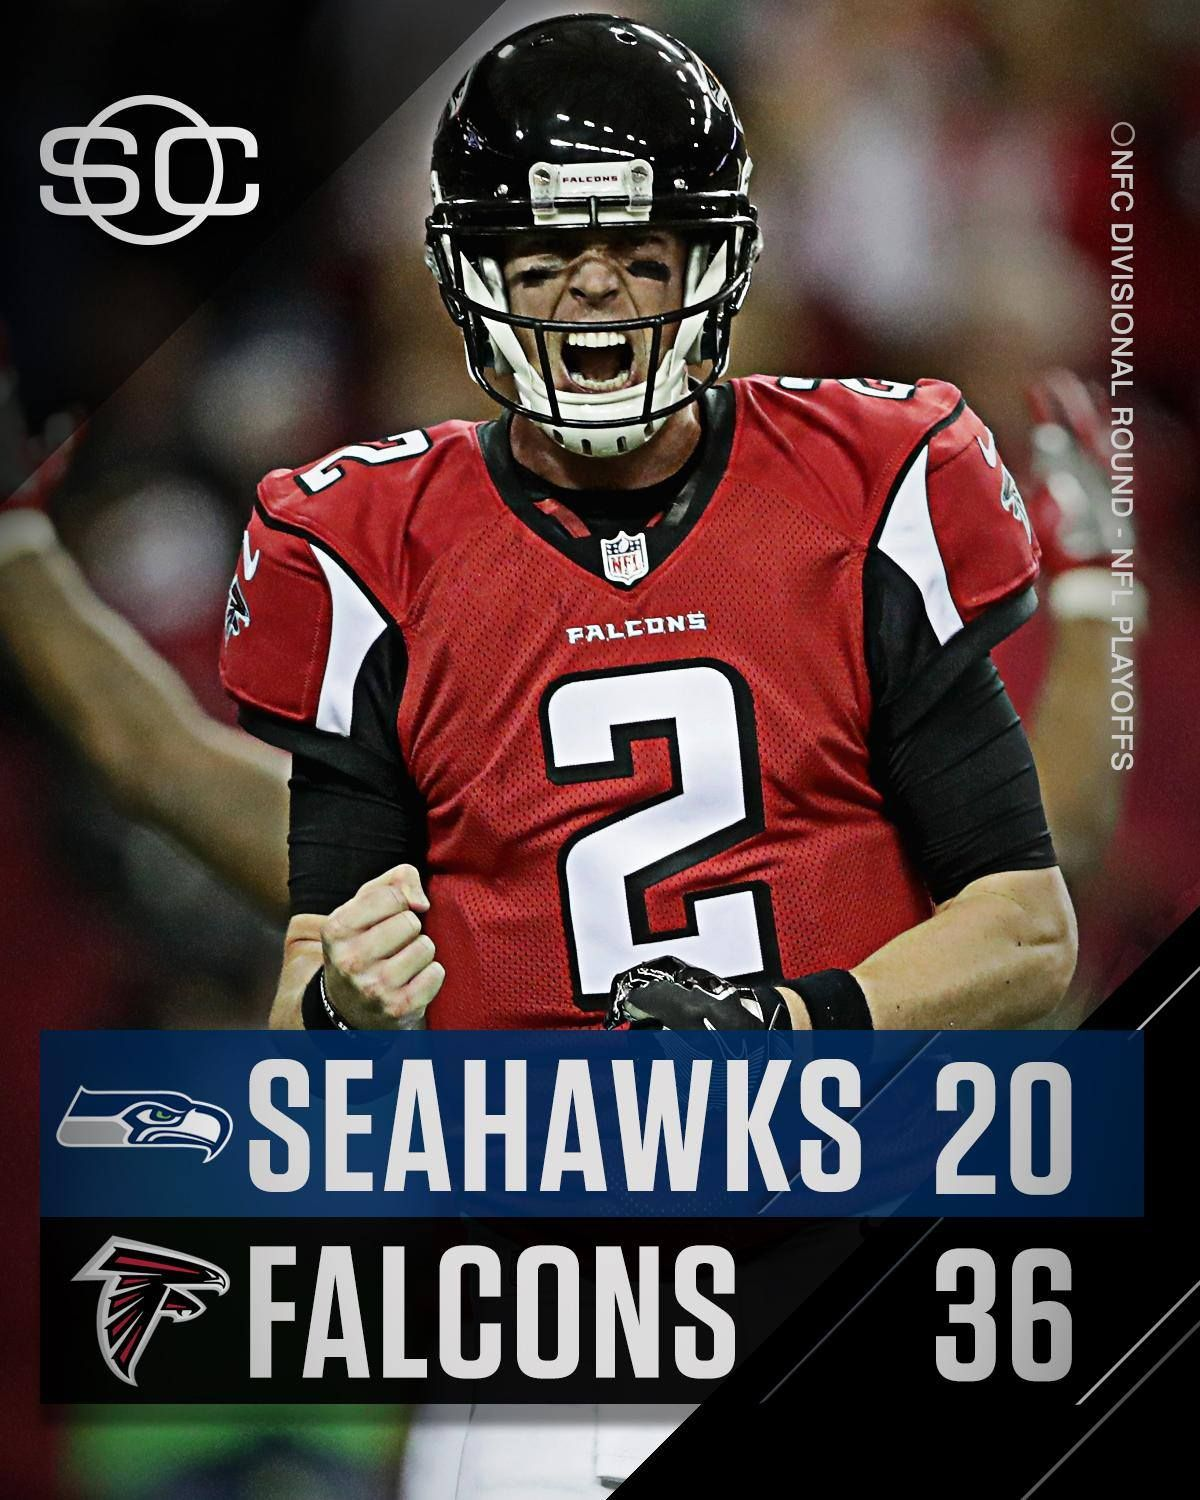 Rise Up Atlanta Falcons Dominate Seattle Seahawks To Win Their 1st Playoff Game Since Defeating Seattle In The 2012 Divis Nfl Playoffs Atlanta Falcons Falcons